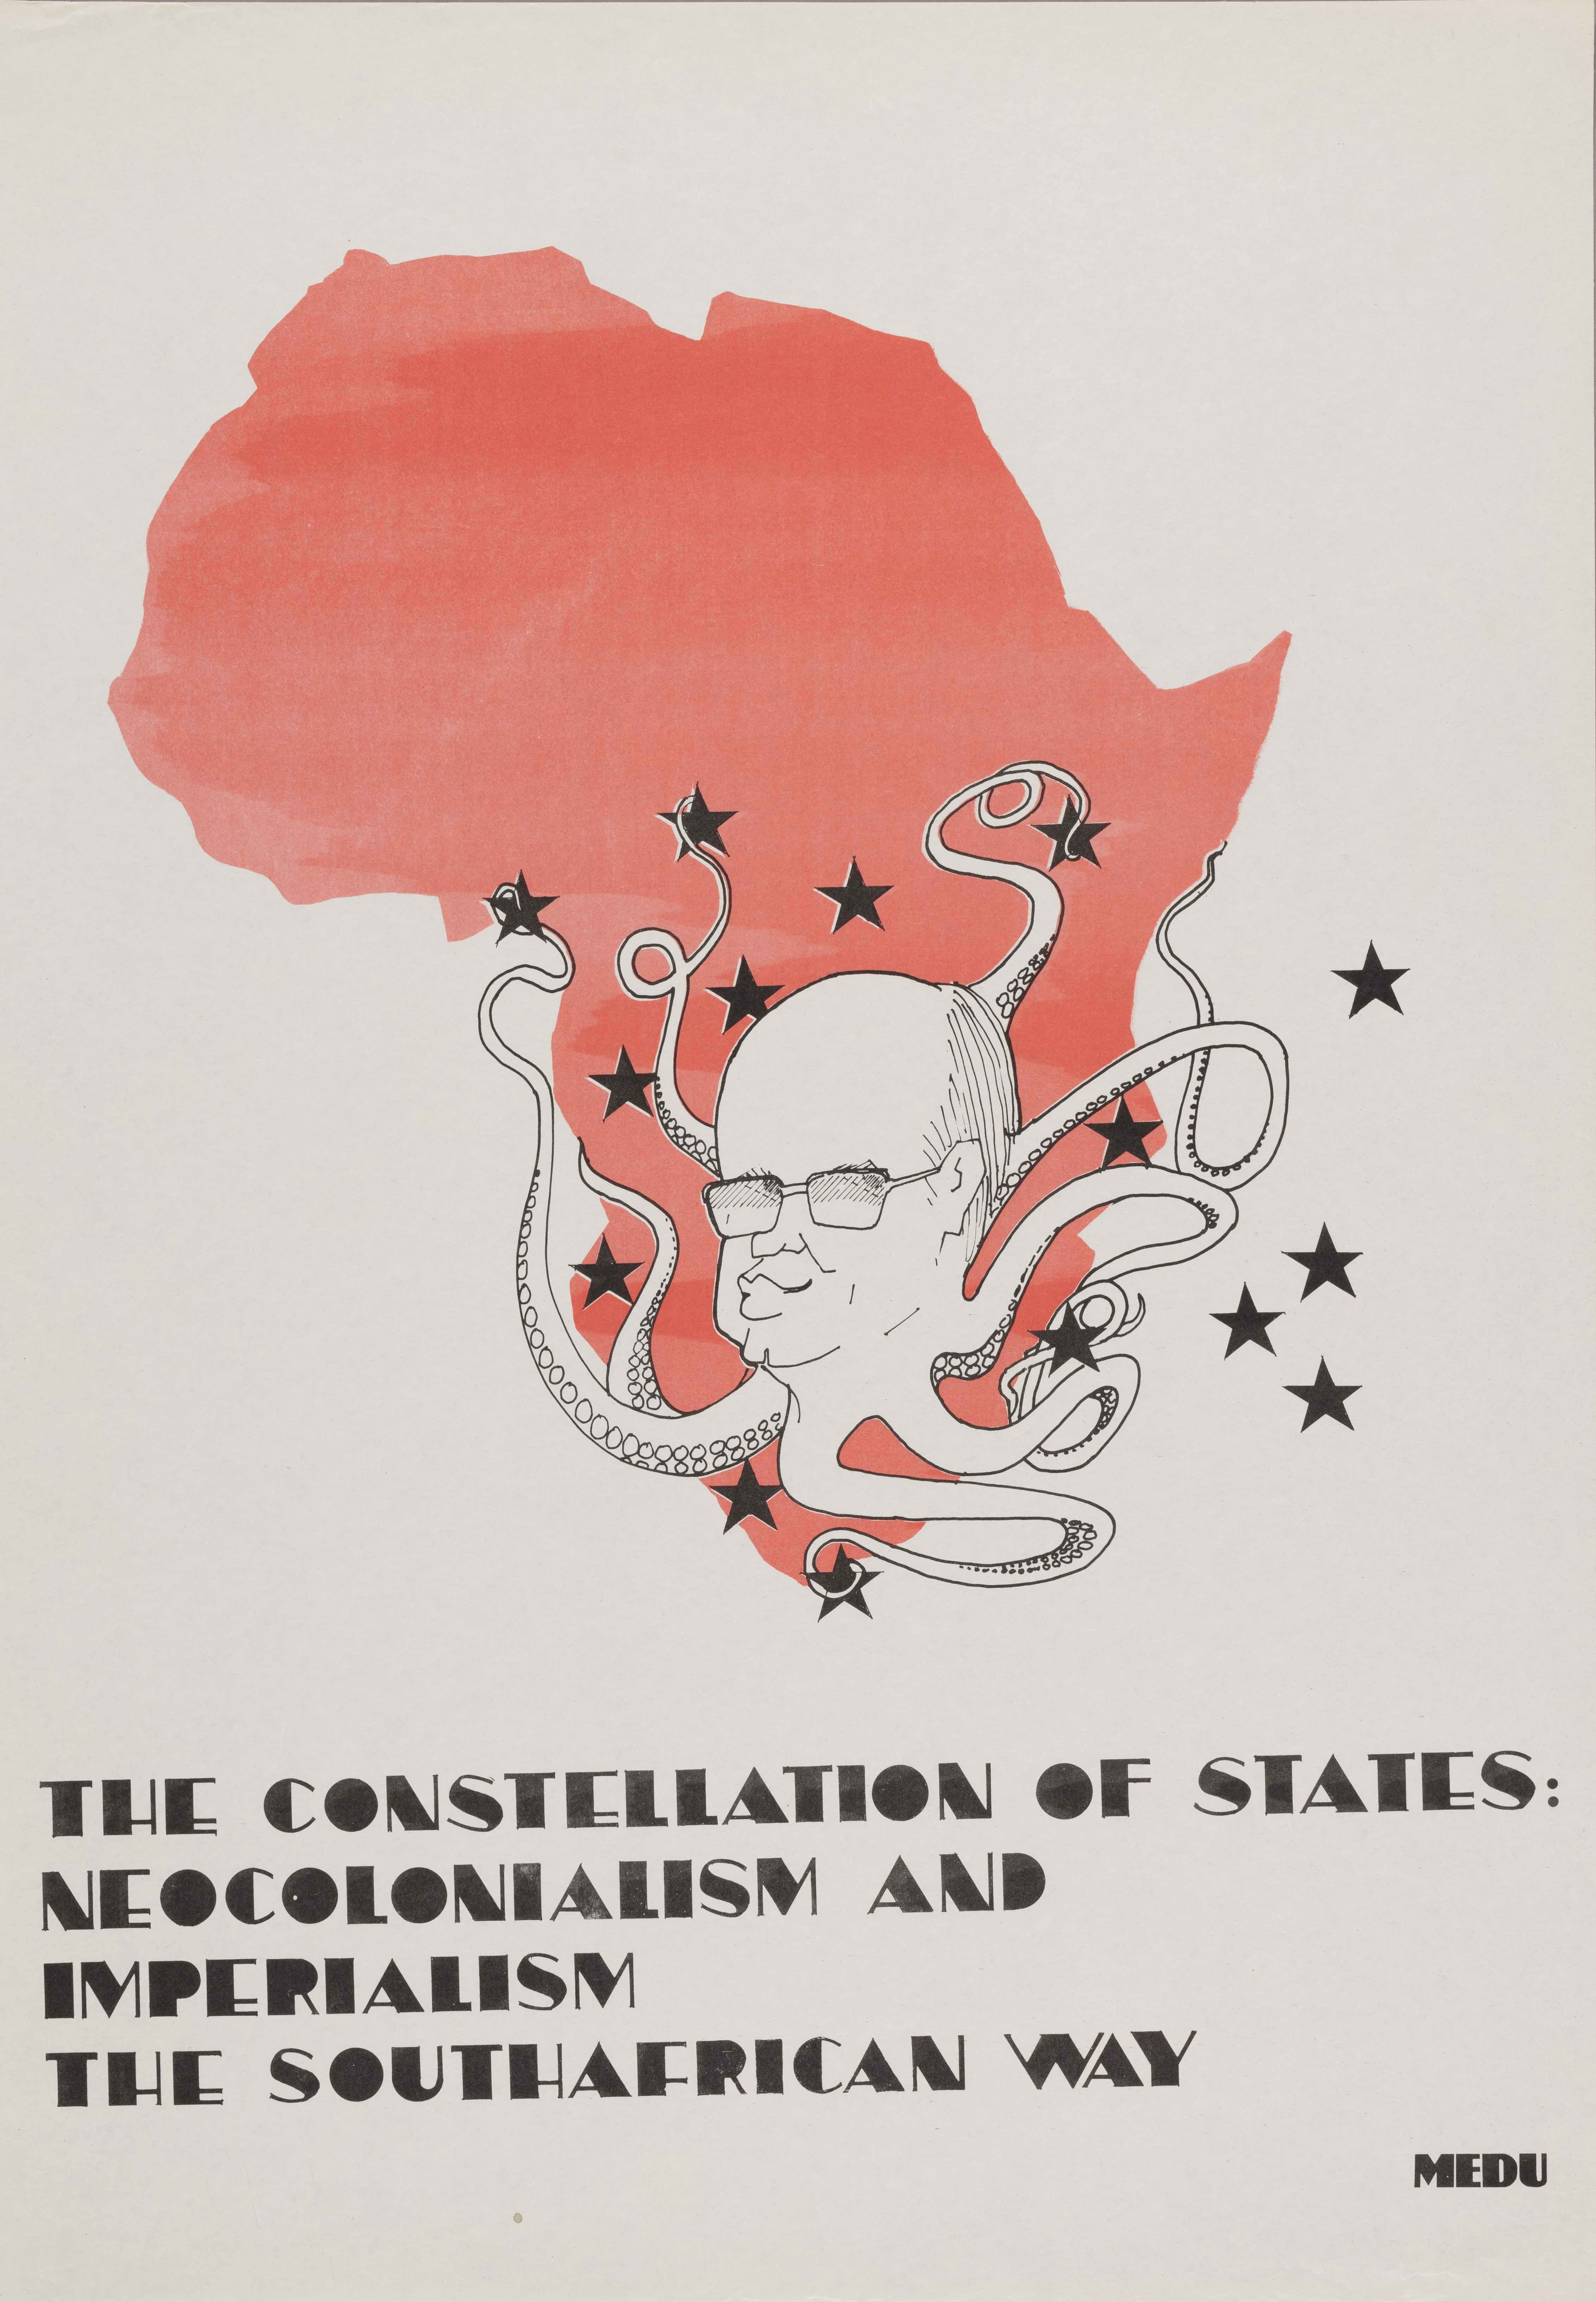 A poster with an image of Africa in pink overlayed with a floating head with octopus-like tentacles.